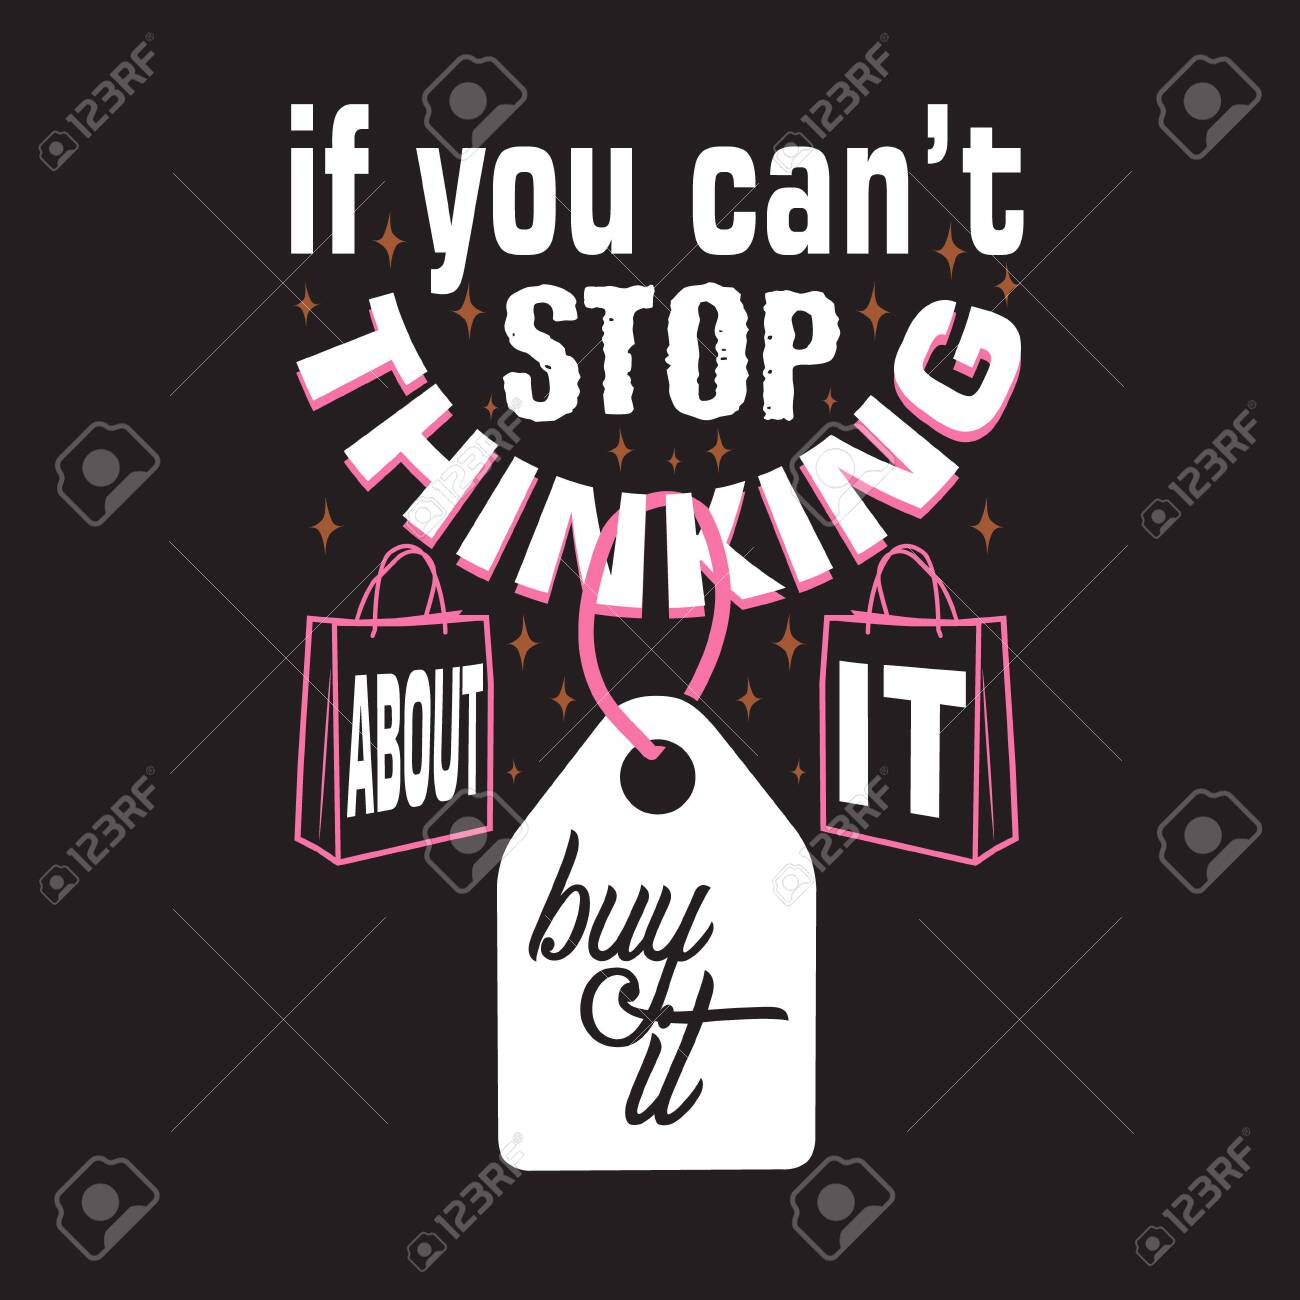 Shopping Quotes And Slogan Good For T Shirt If You Can T Stop Royalty Free Cliparts Vectors And Stock Illustration Image 137307235